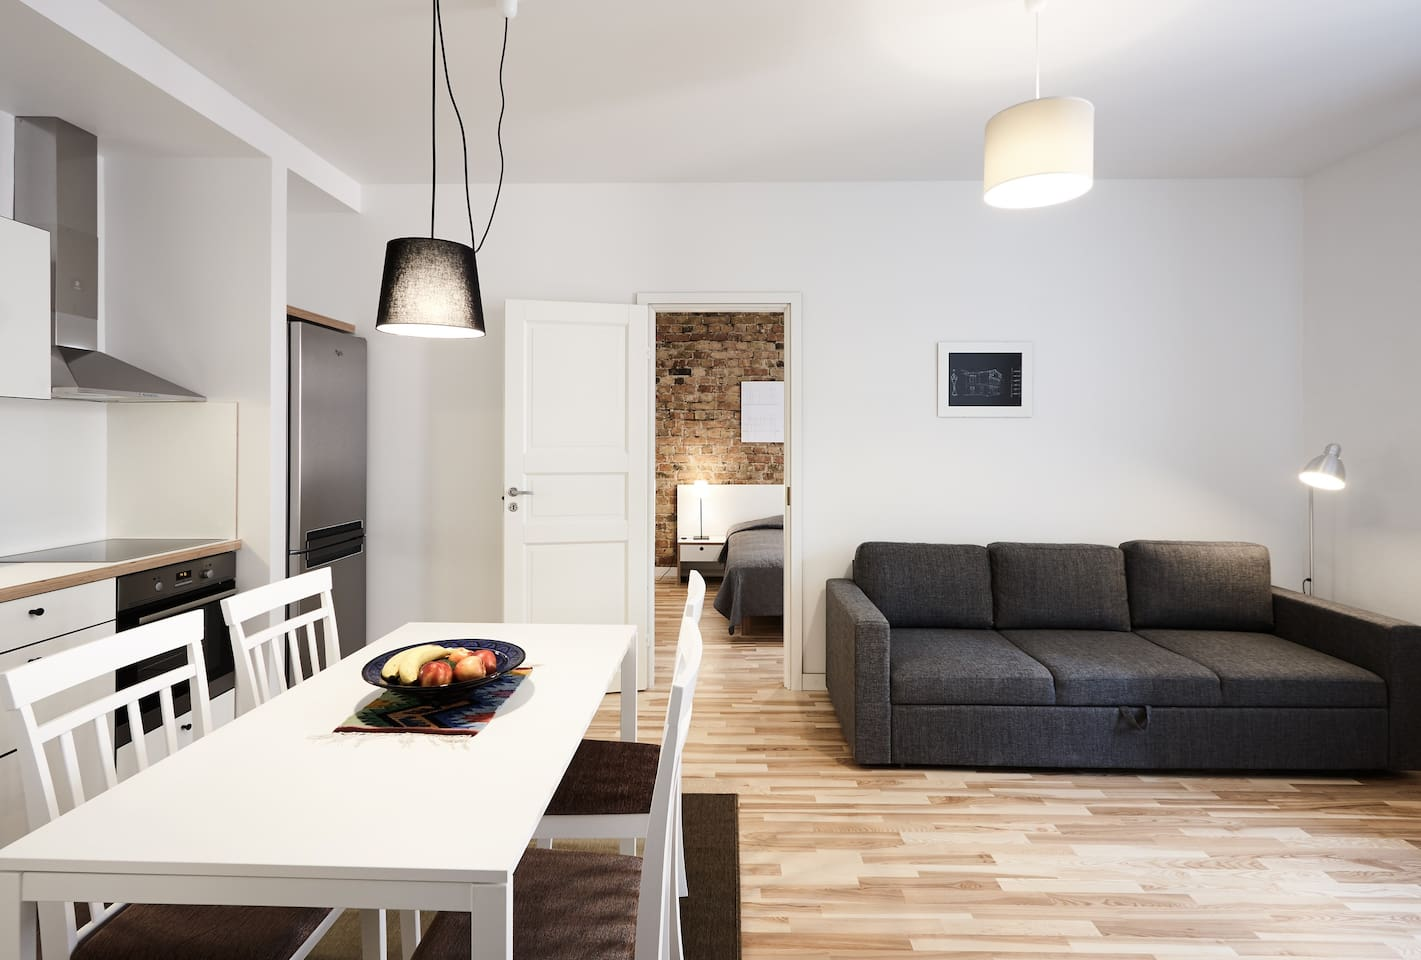 Living room with open space kitchen and sleeper sofa